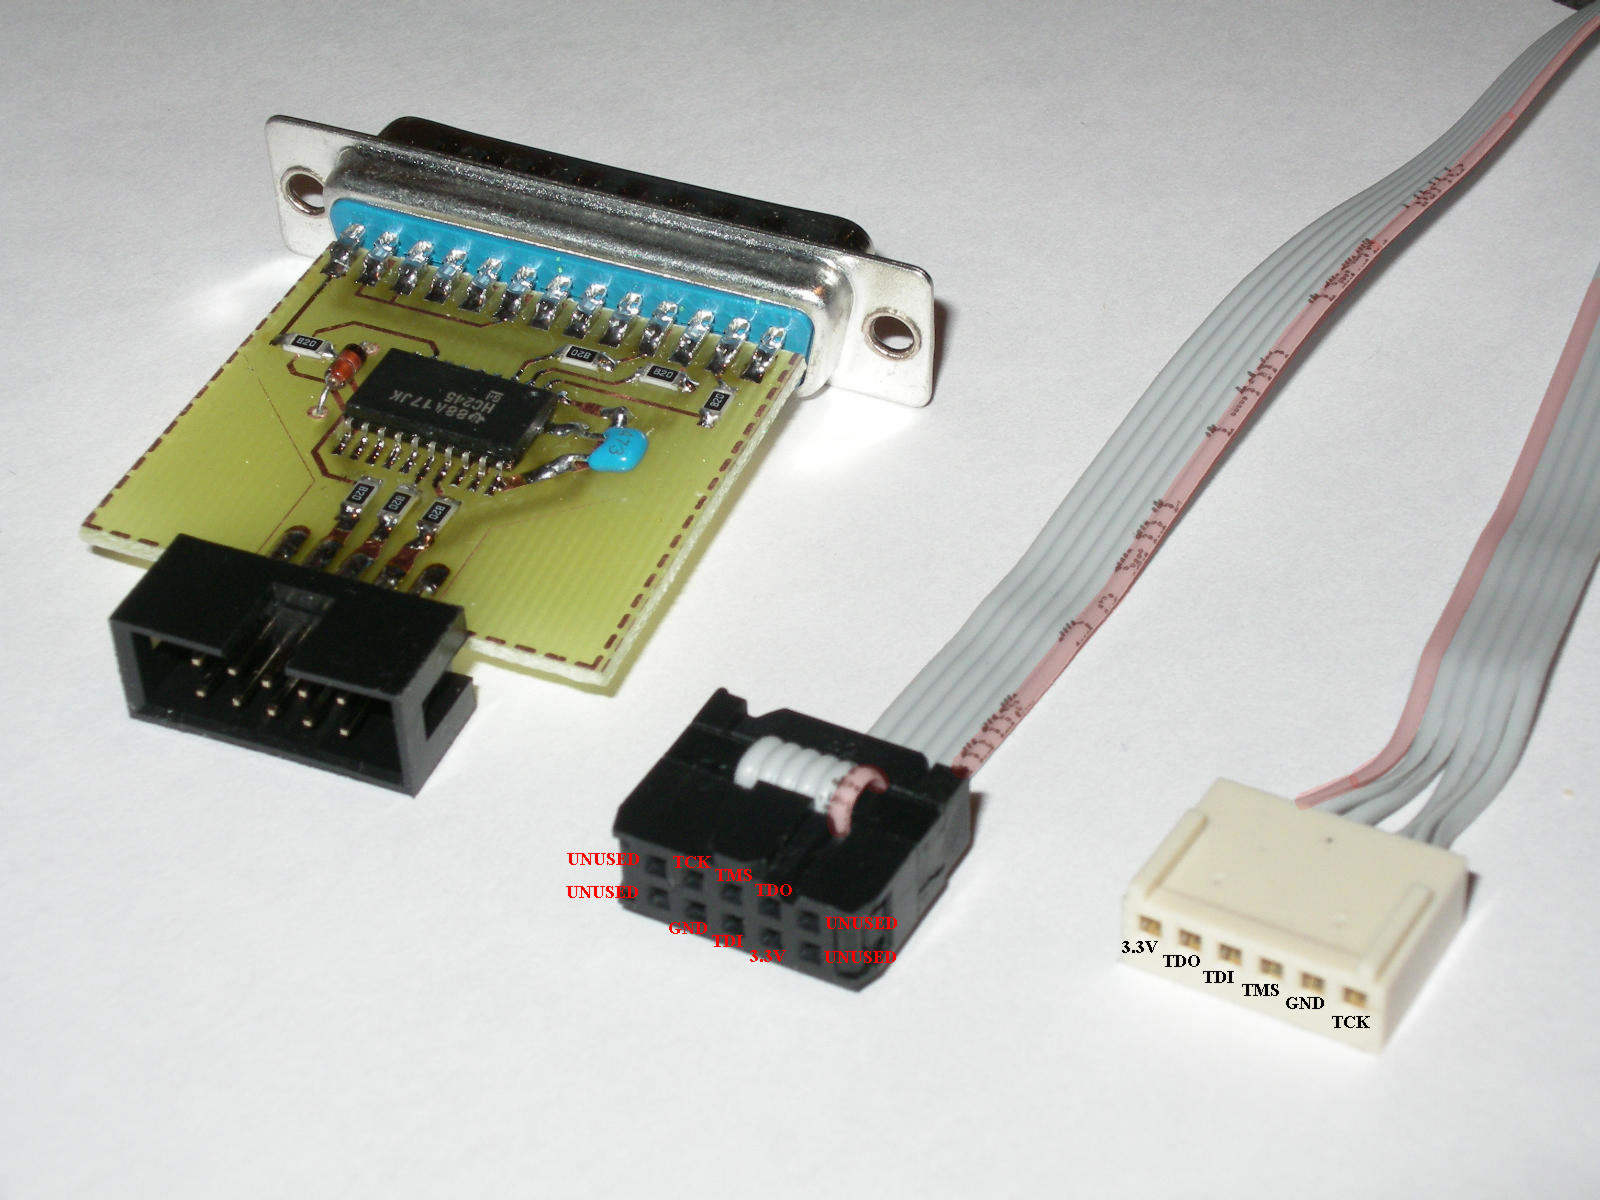 Turbo >> JTAG cable for CPLD programming ( k-mouse / profi interface )